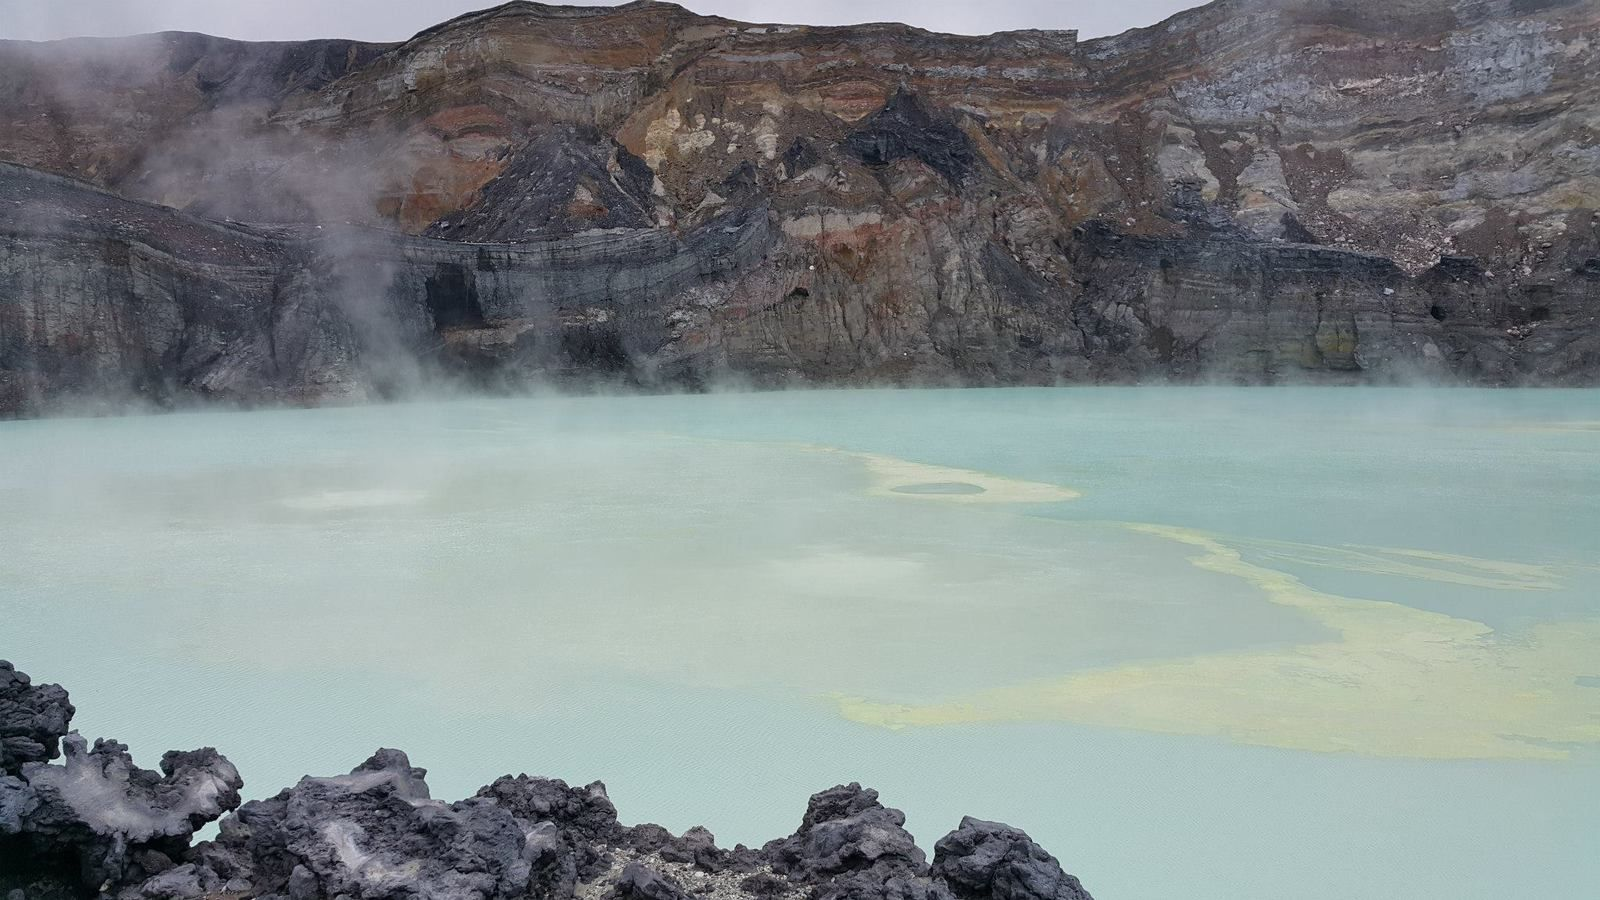 Laguna Caliente of the Poas 14/07/2015: temperature increase and sulfur lifts - photos Raúl Mora-Amador / RSN